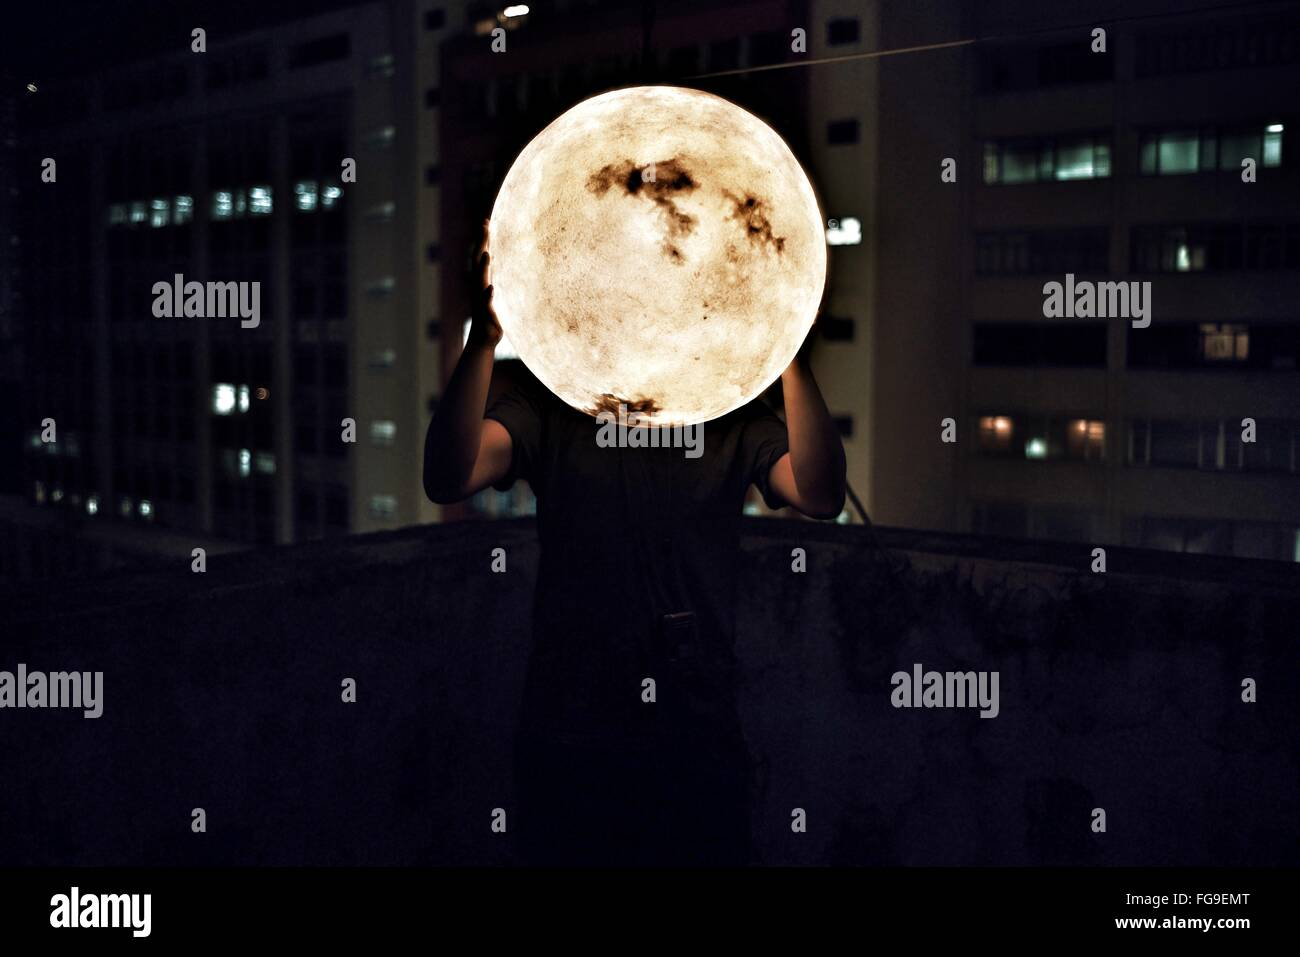 Man Holding Artificial Moon At Night - Stock Image